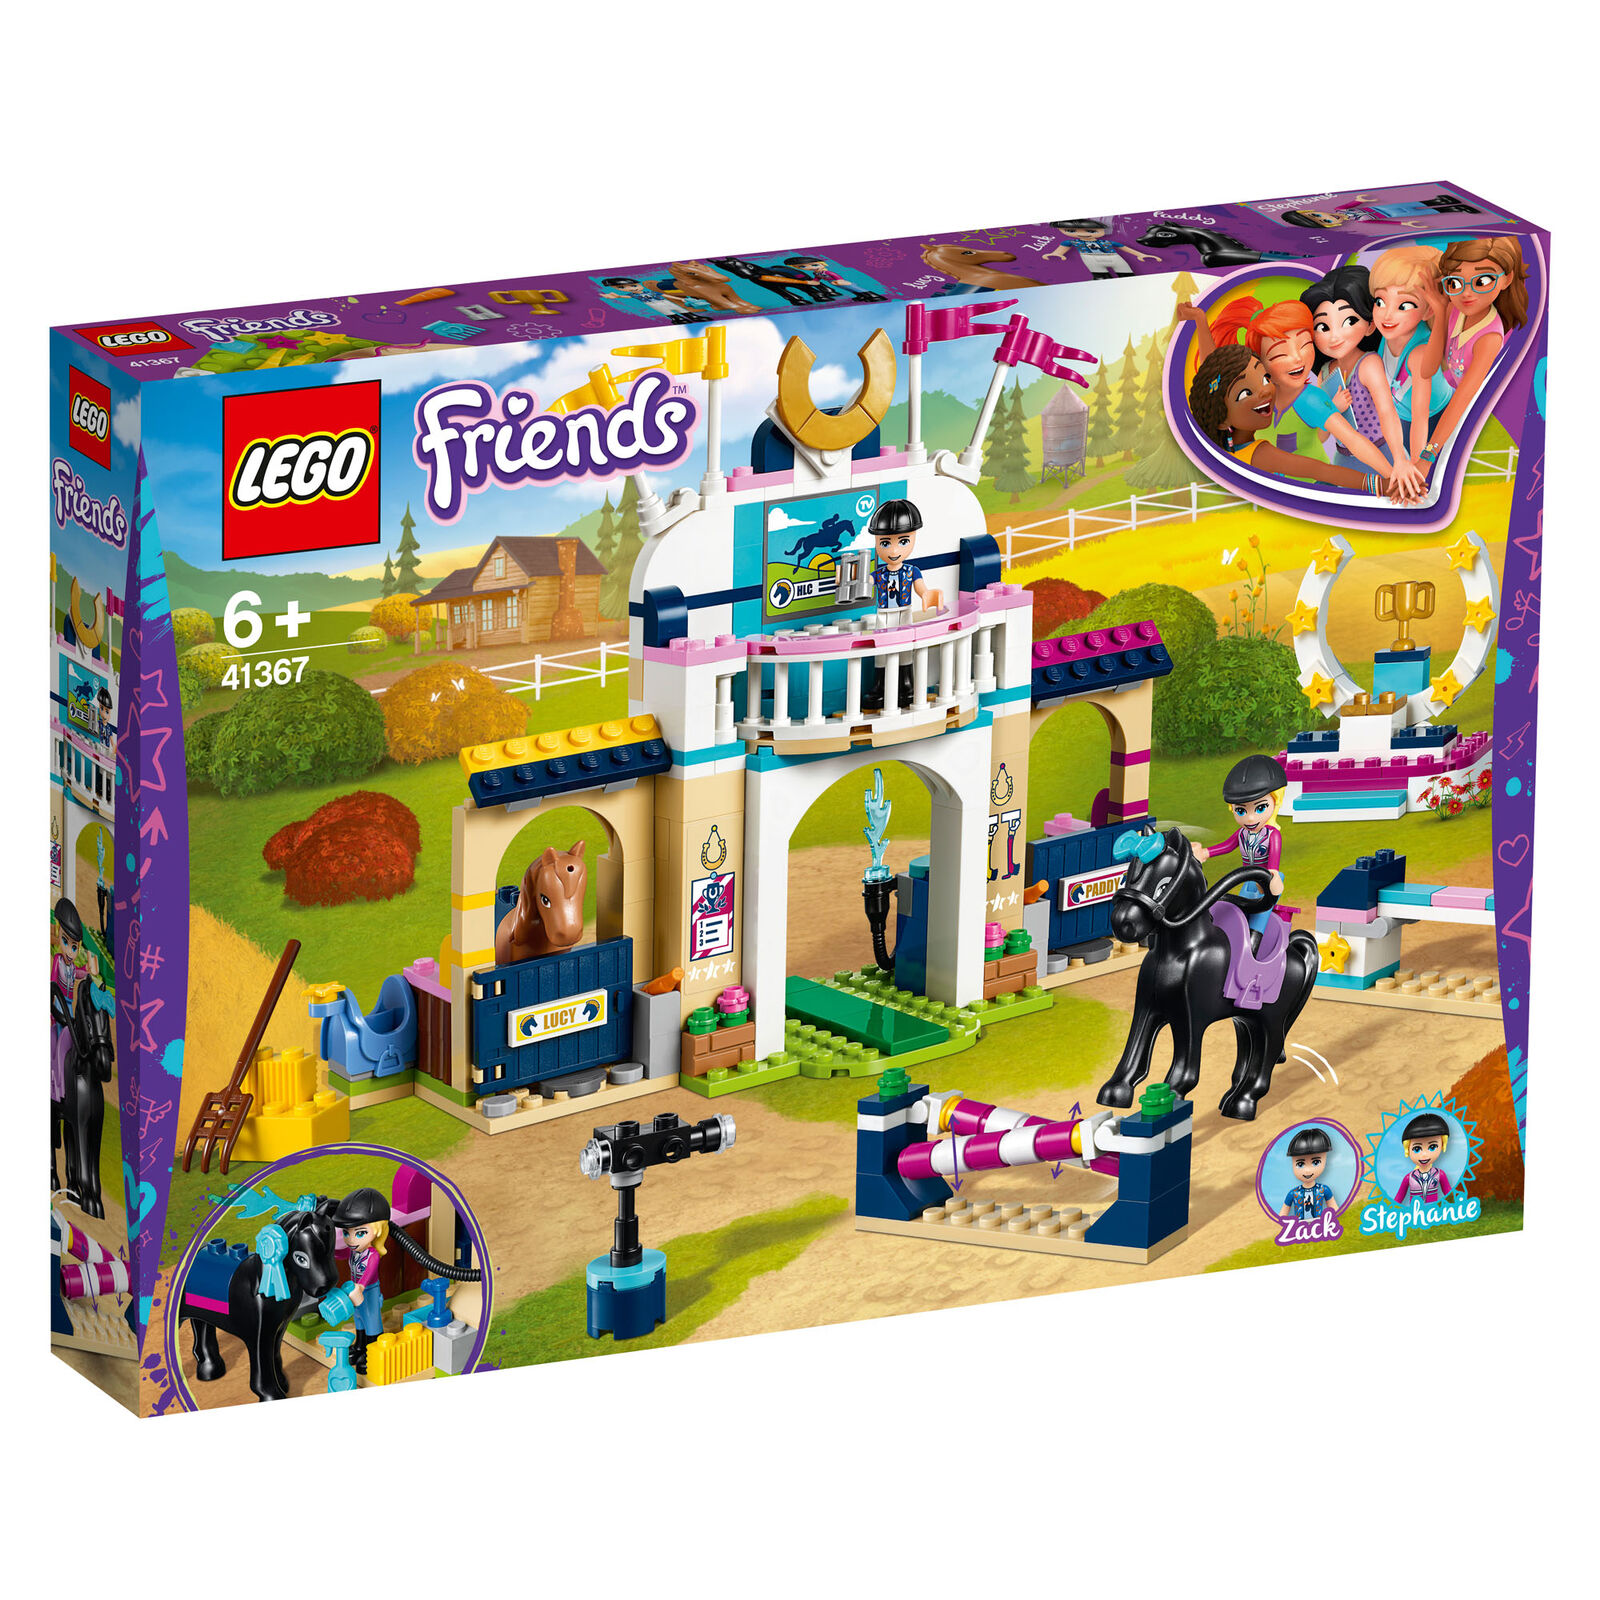 41367 LEGO Friends Stephanie's Horse Jumping 337 Pieces Age 6+ New Release 2019